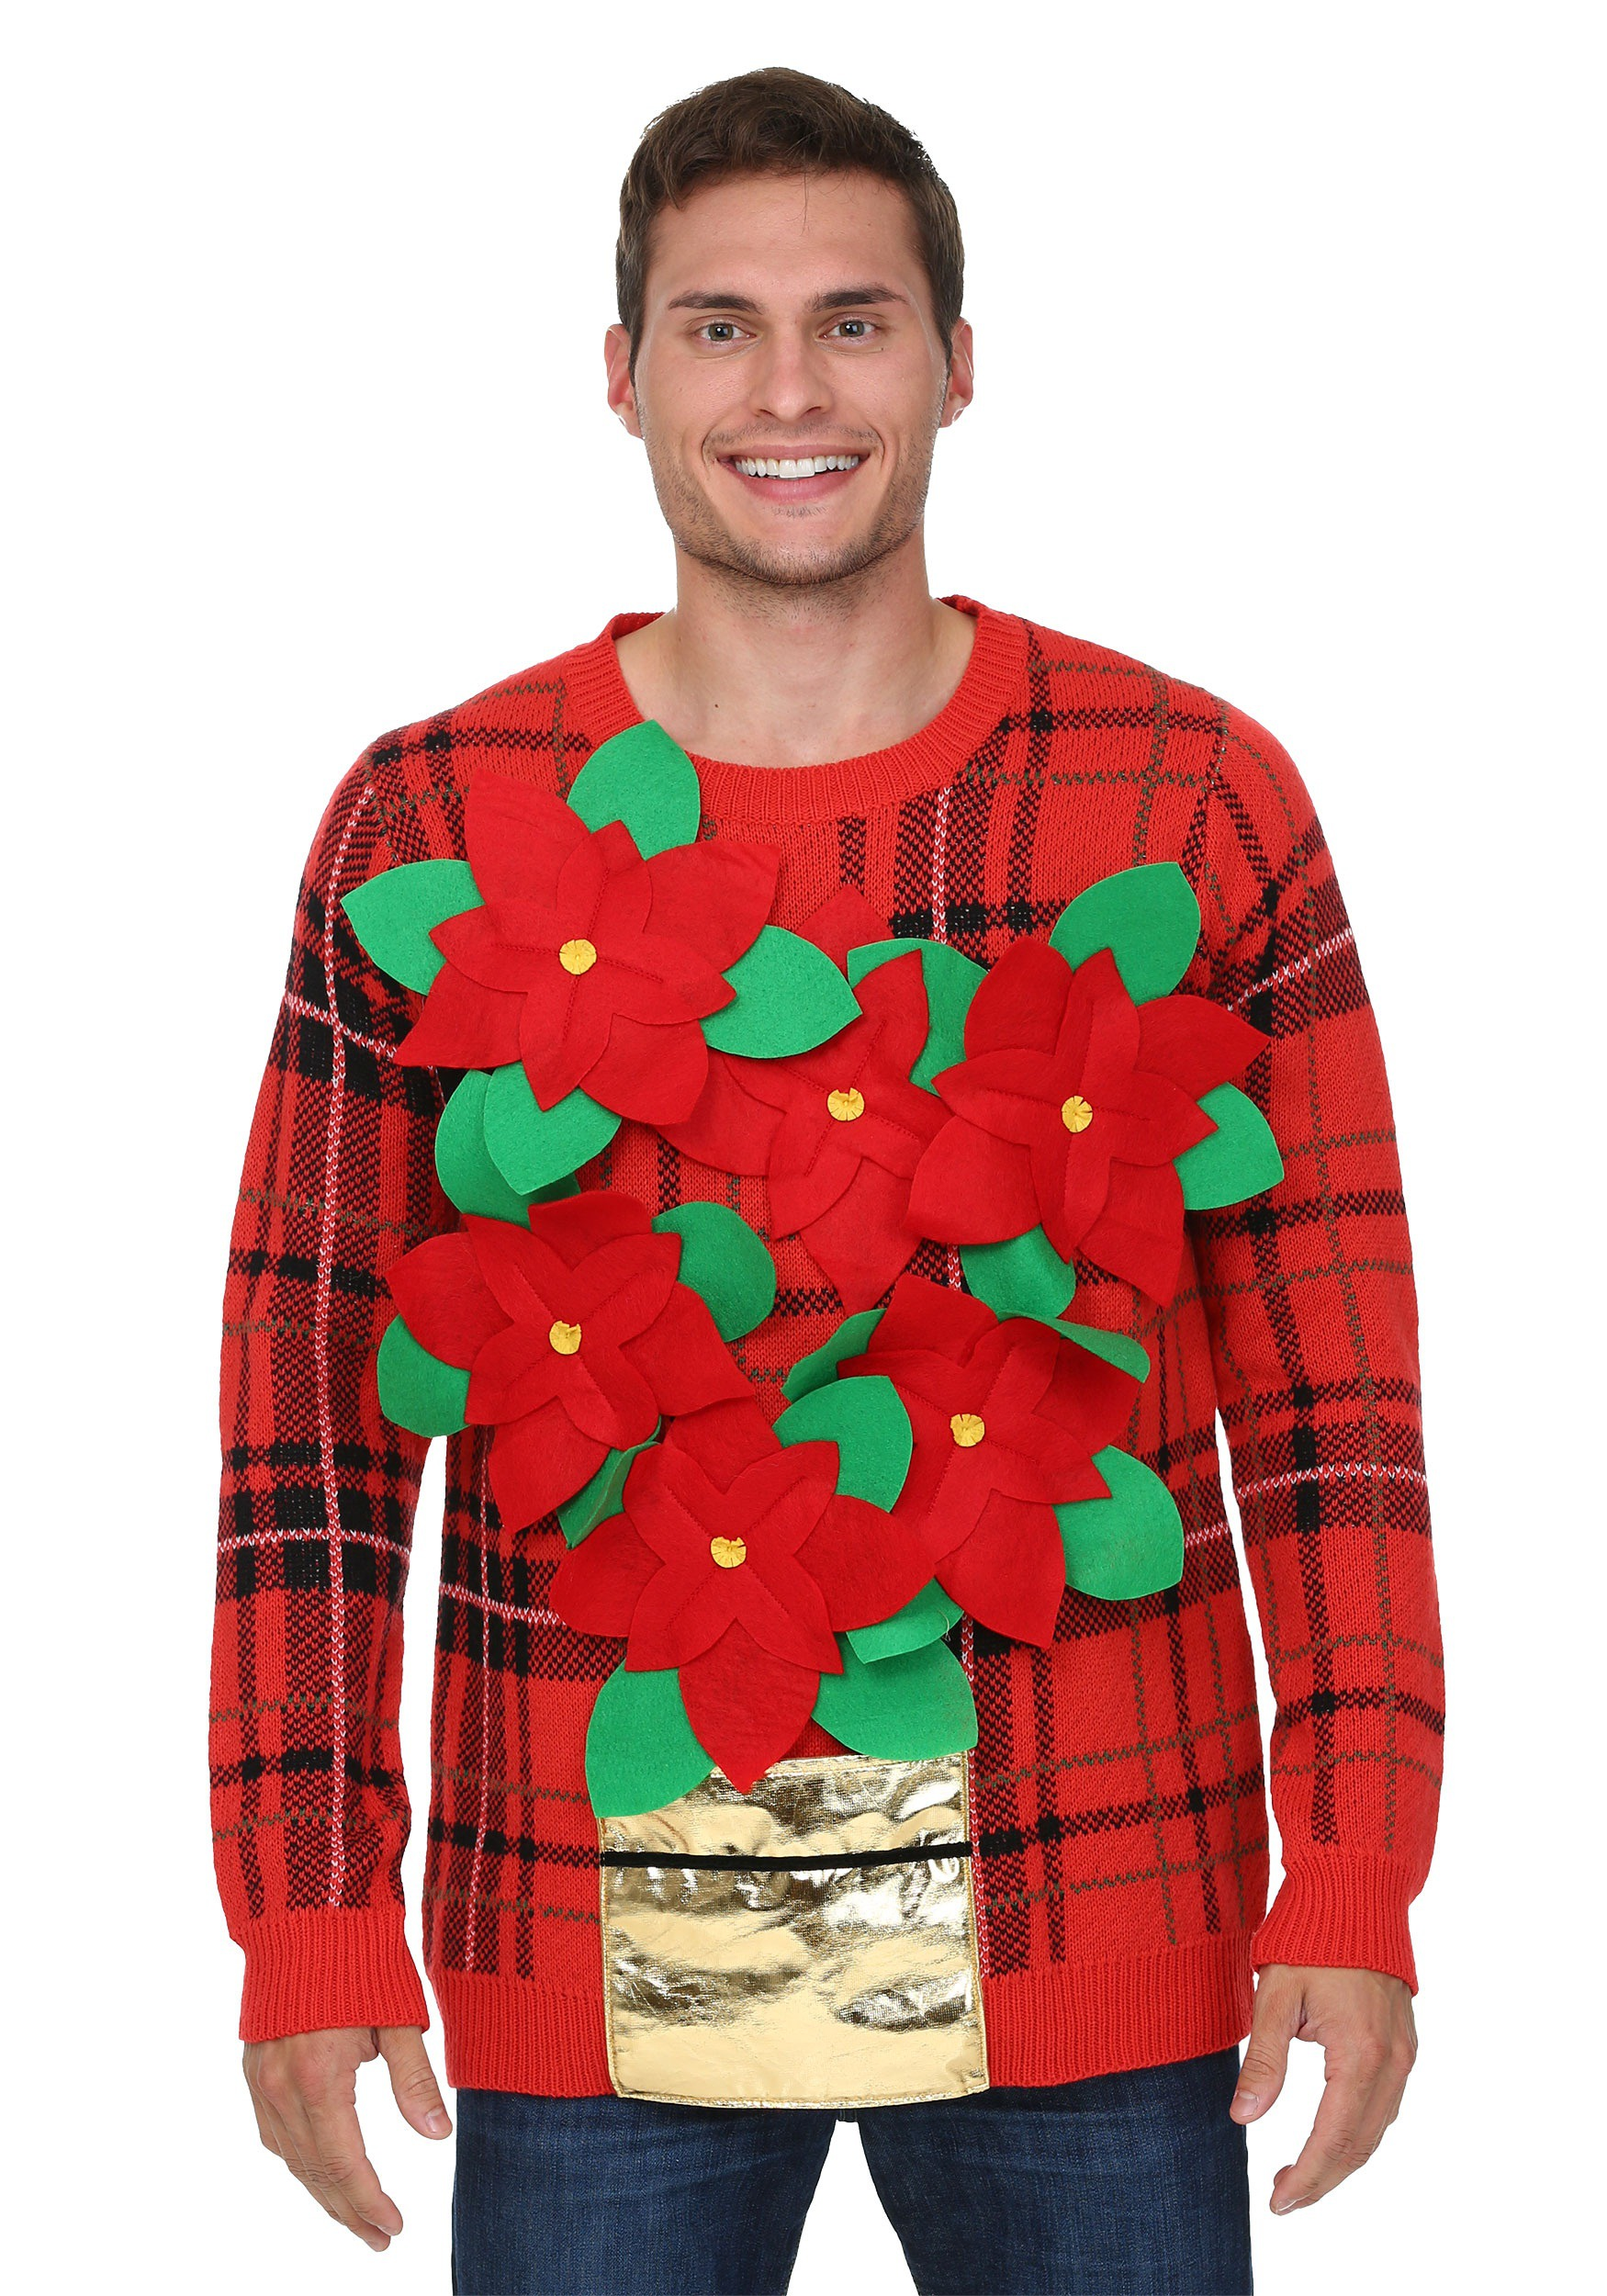 Poinsettia Bouquet Ugly Christmas Sweater for Adults